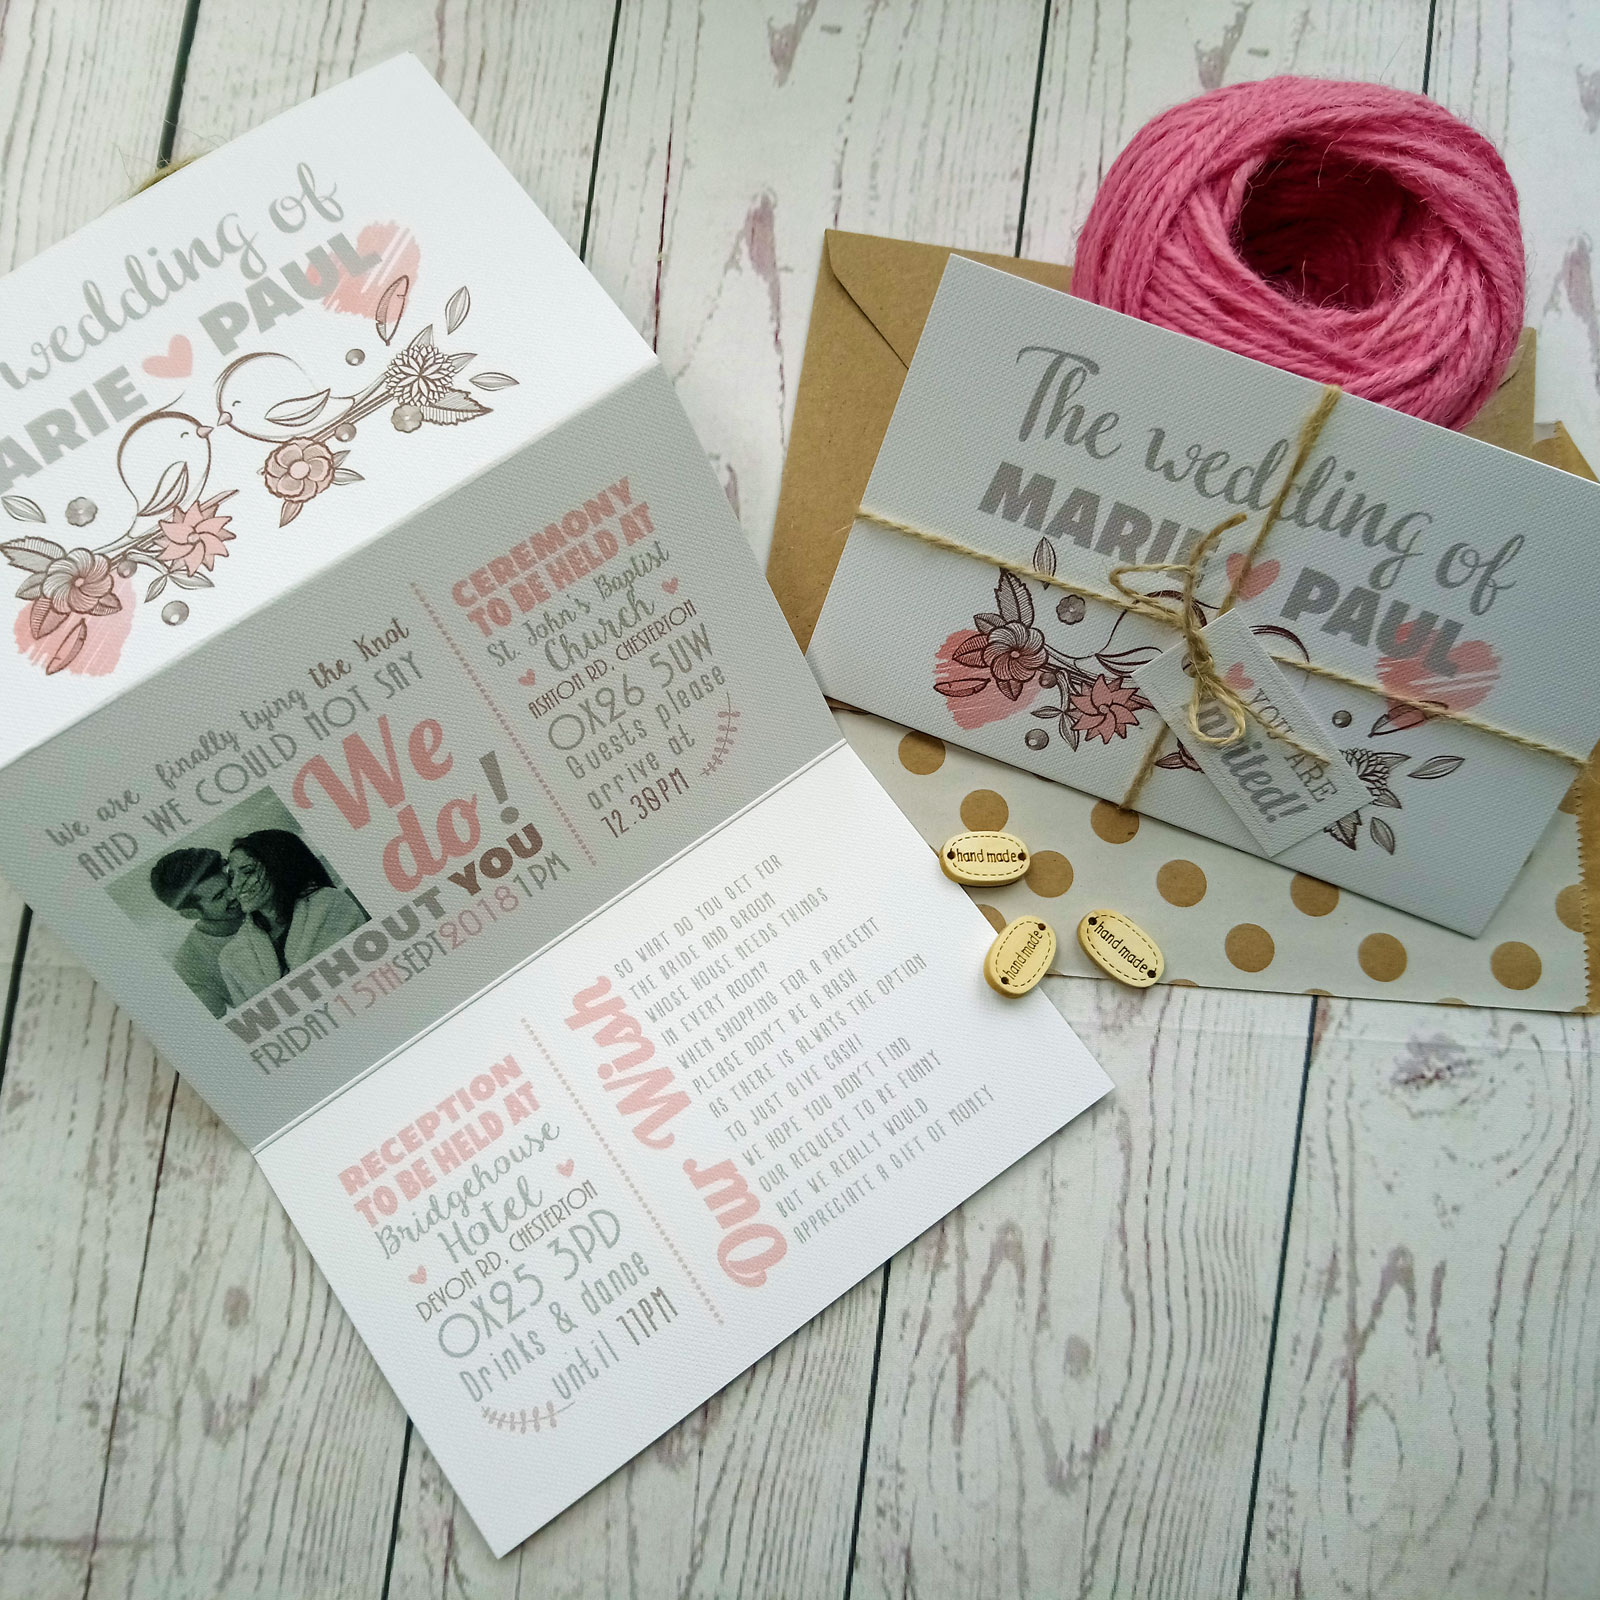 vintage birds wedding invitation 095 - What Goes In A Wedding Invitation